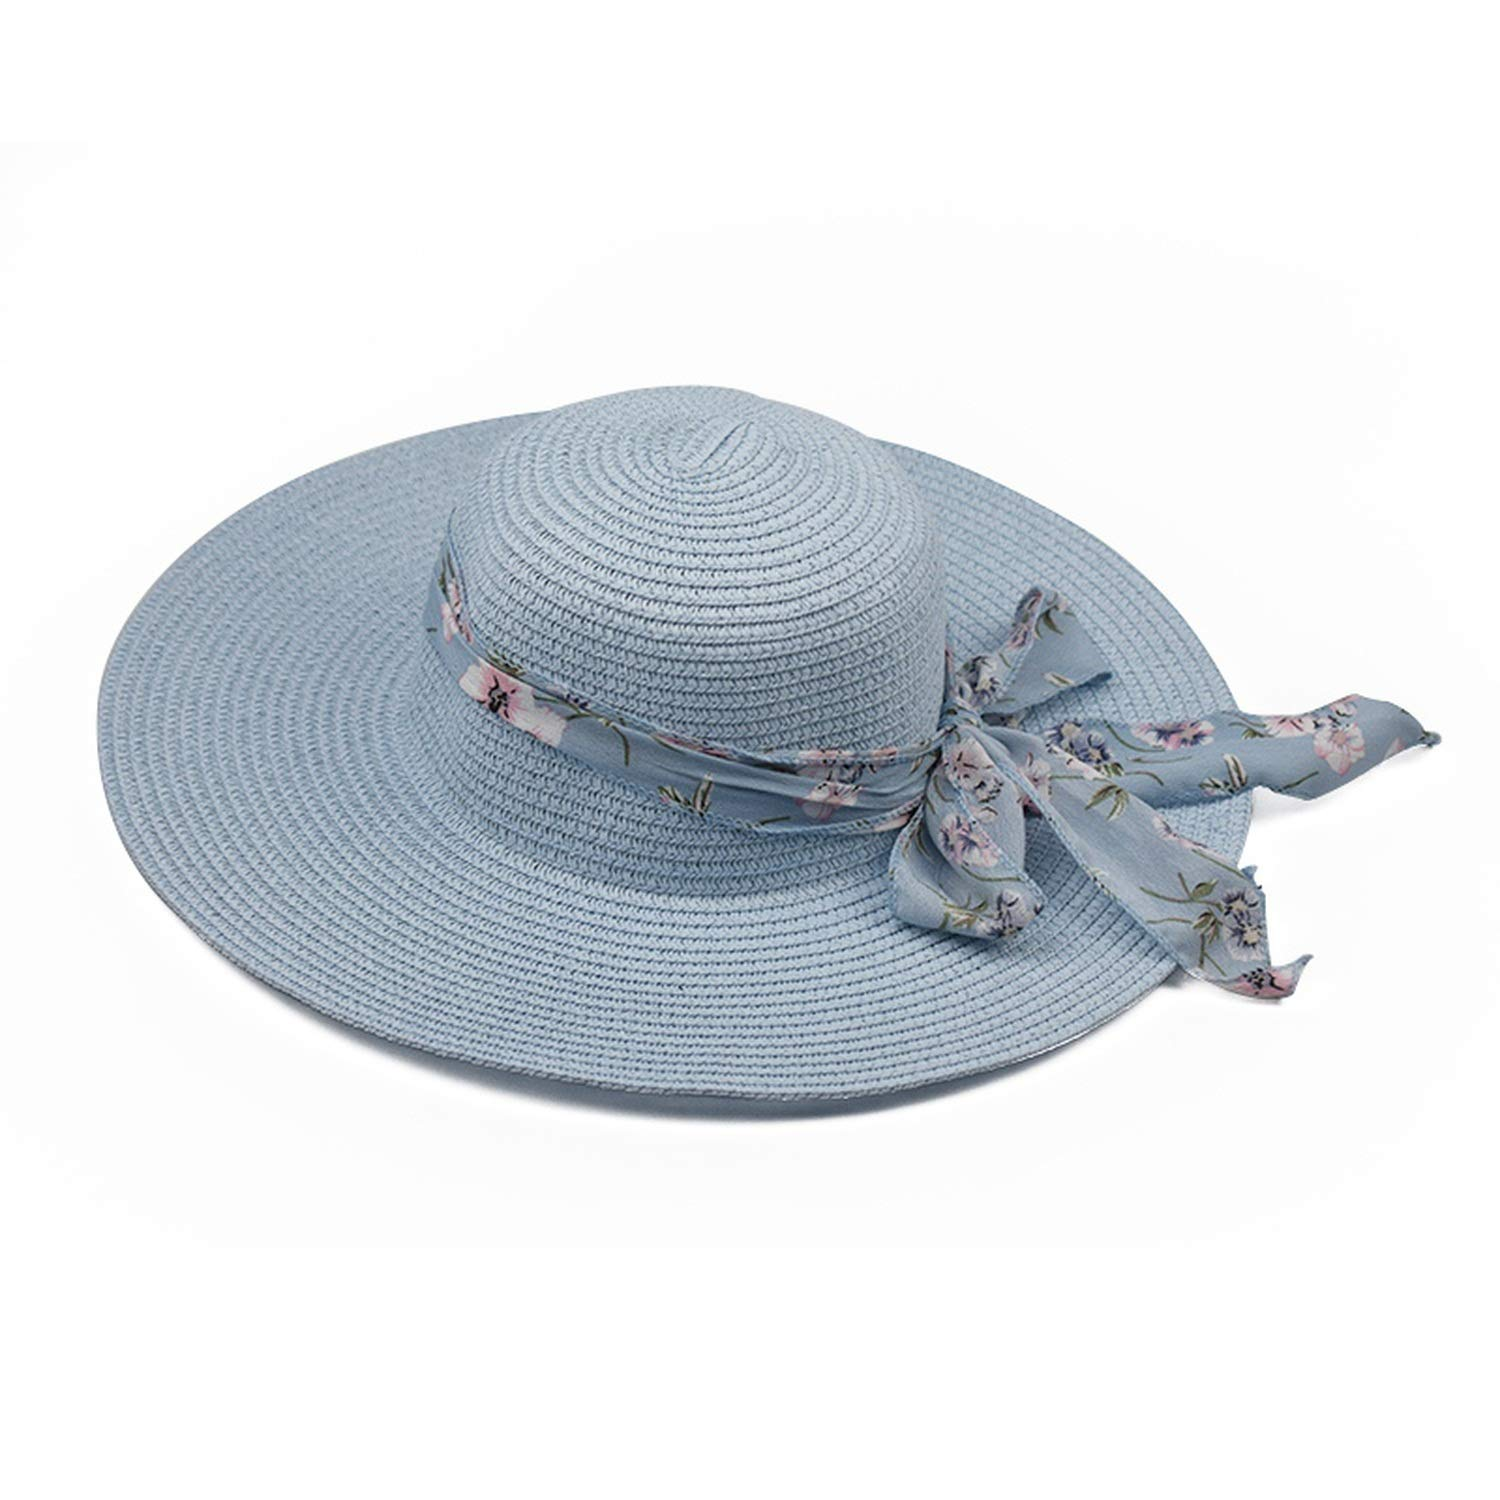 New 2019 Round Top Raffia Wide Brim Straw Summer Sun for Women with Leisure Beach Hats Lady Flat